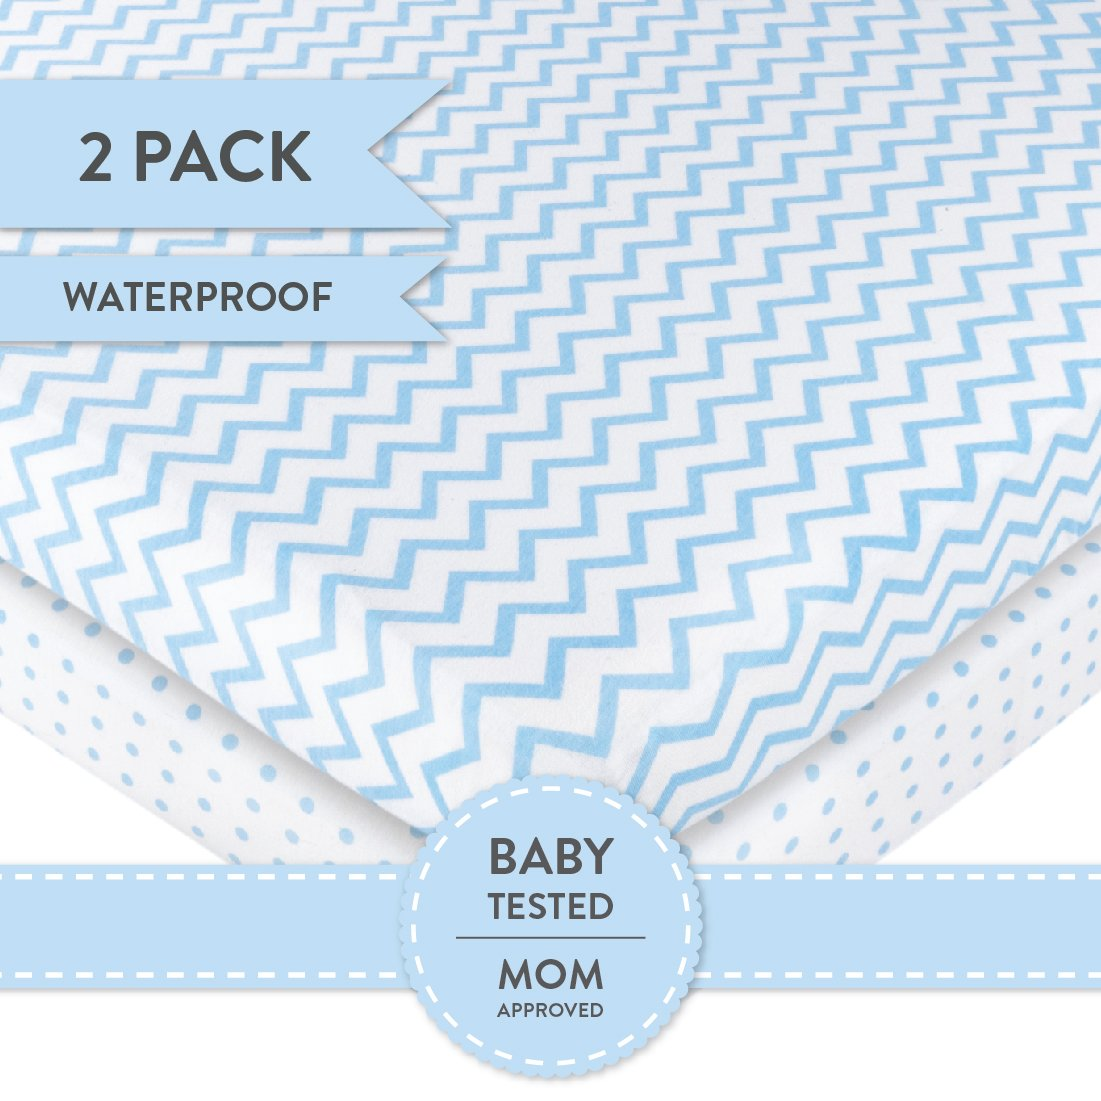 Pack N Play Portable Crib / Mini Crib Sheet Set 100% Jersey Cotton for Baby Boy by Ely's & Co. - Blue Chevron and Polka Dot 2 Pack by Ely's & Co (Image #3)